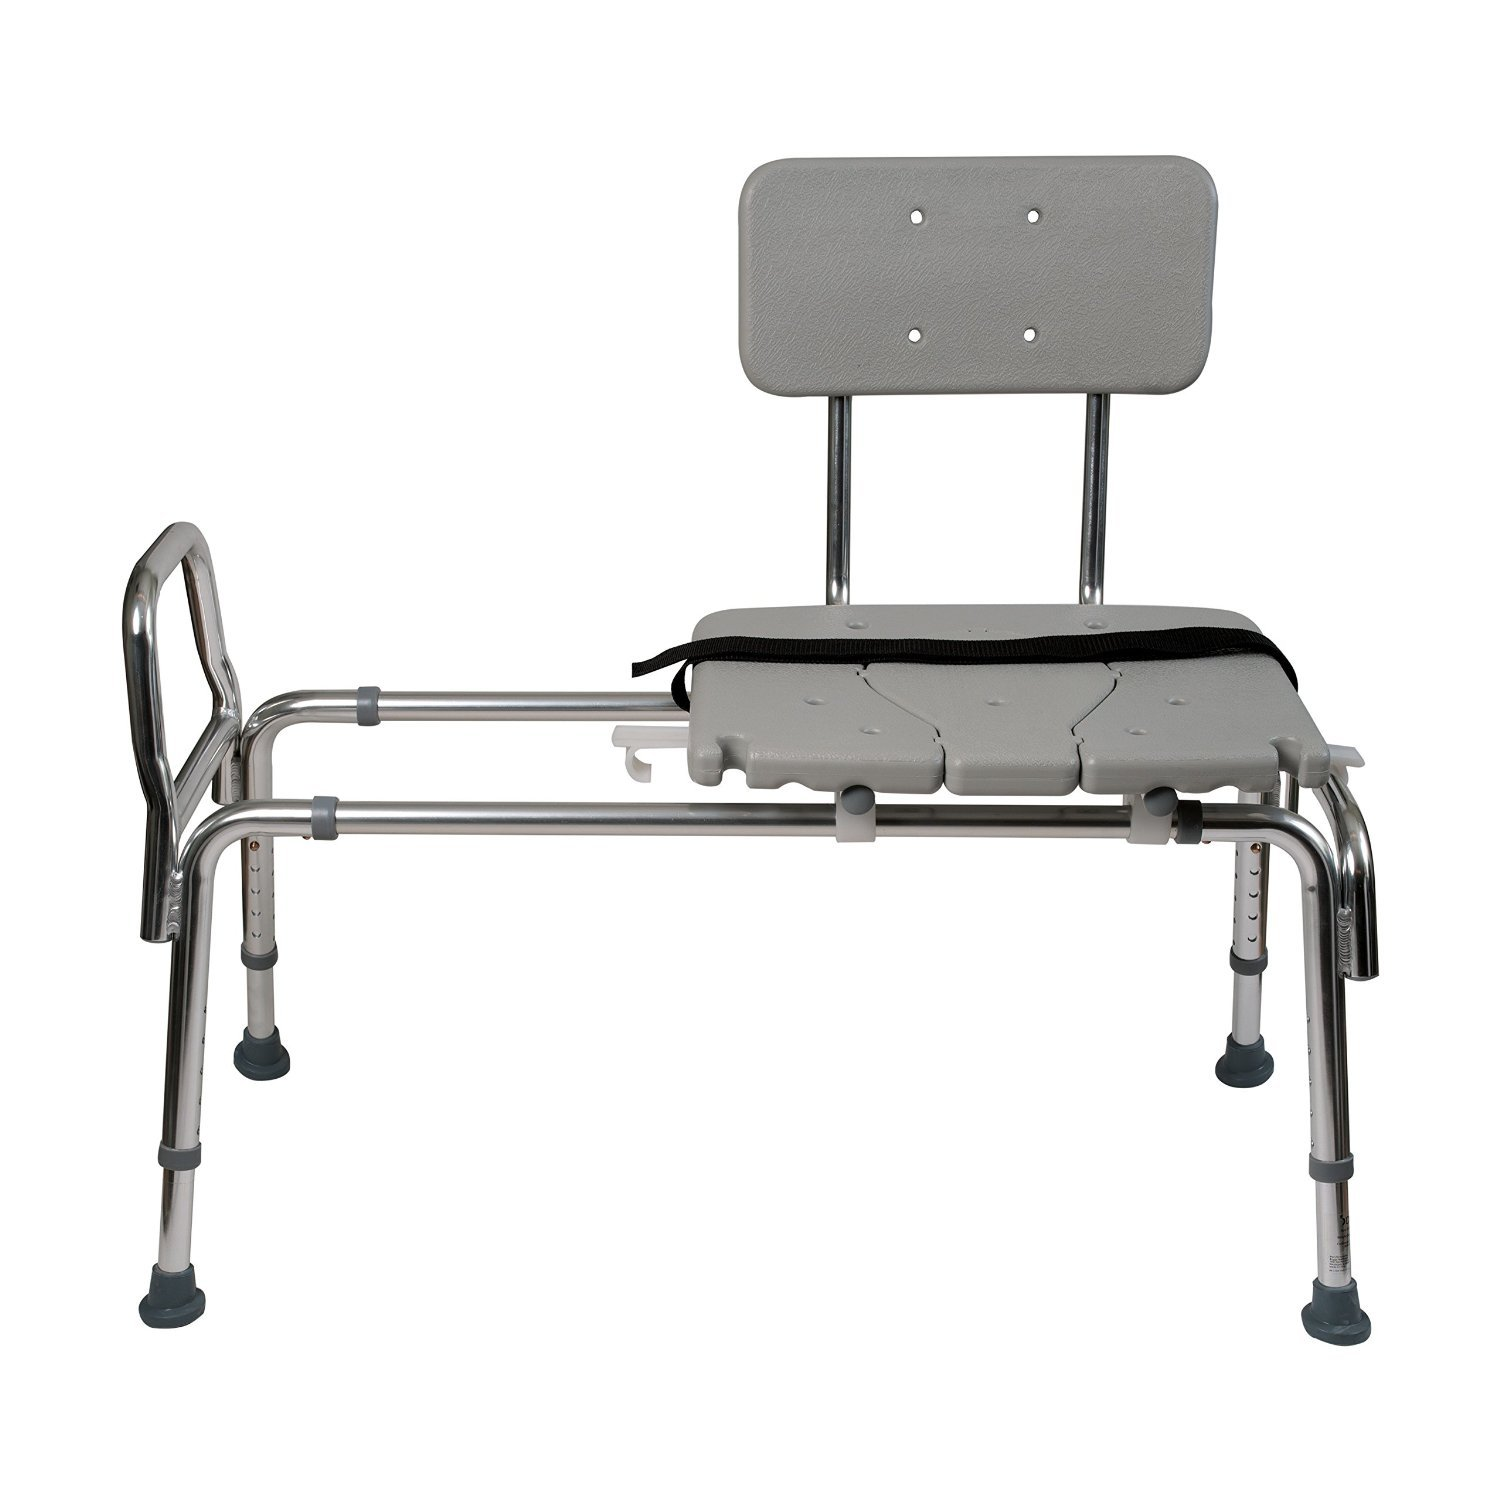 Shower bench transfer seat bath tub chair safety bench handicap safe cut out Transfer bath bench